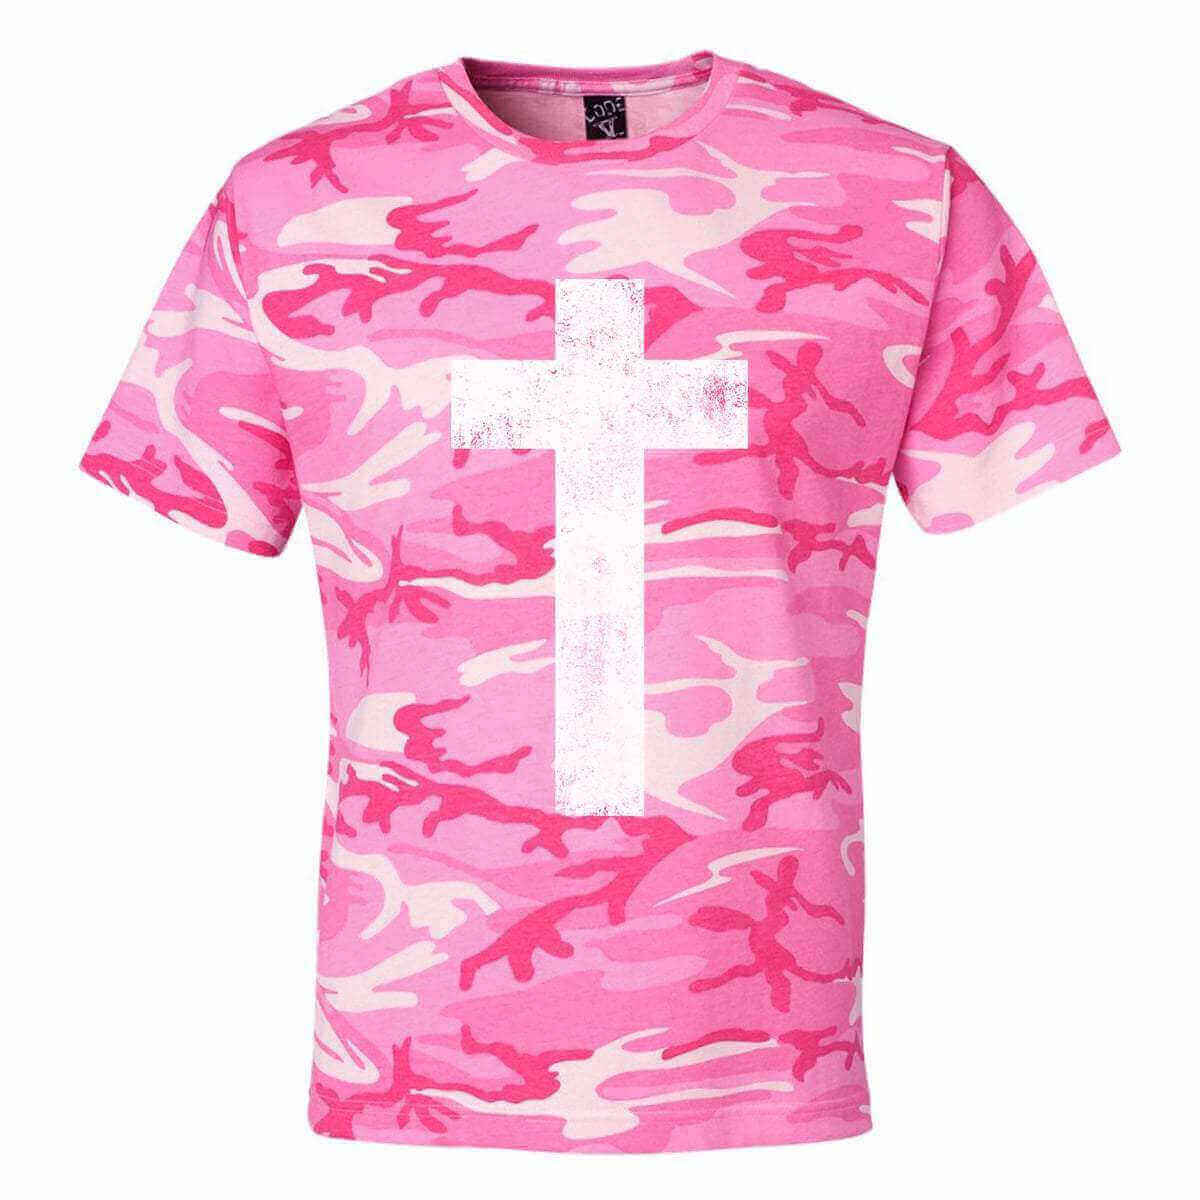 Cross Camo Christian Unisex T-Shirt